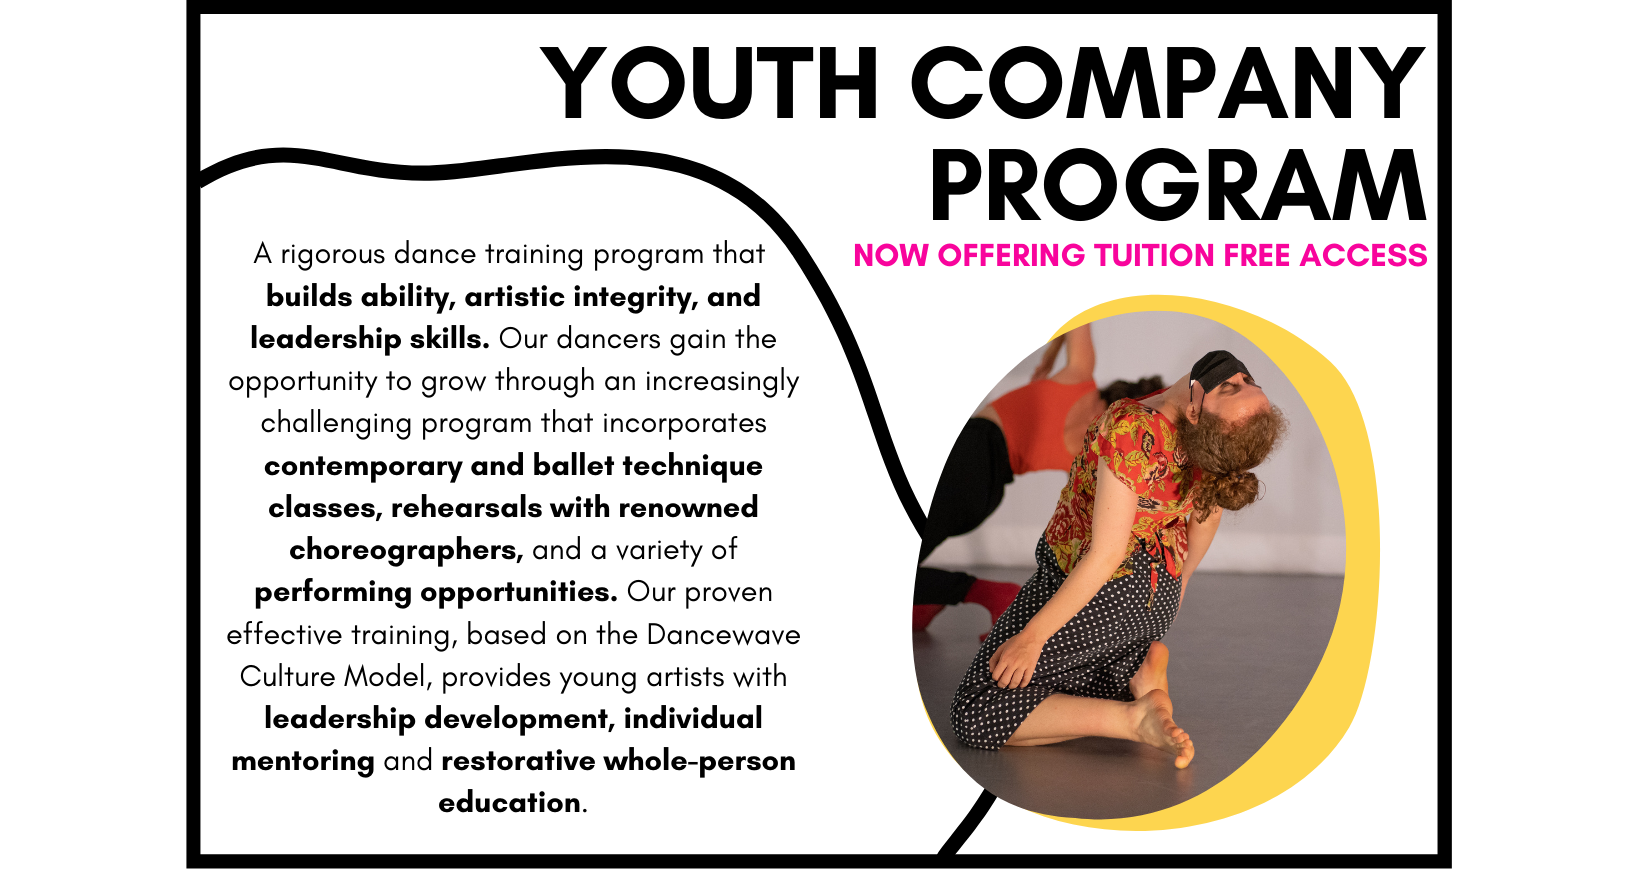 The Dancewave Company Program is a rigorous dance training program that builds ability, artistic integrity, and leadership skills. Our dancers gain the opportunity to grow through an increasingly challenging program that incorporates modern and ballet technique classes, rehearsals with renowned choreographers, and a variety of performing opportunities. Our proven effective training, based on the Dancewave Culture Model, provides young artists with leadership development, individual mentoring and restorative whole-person education.